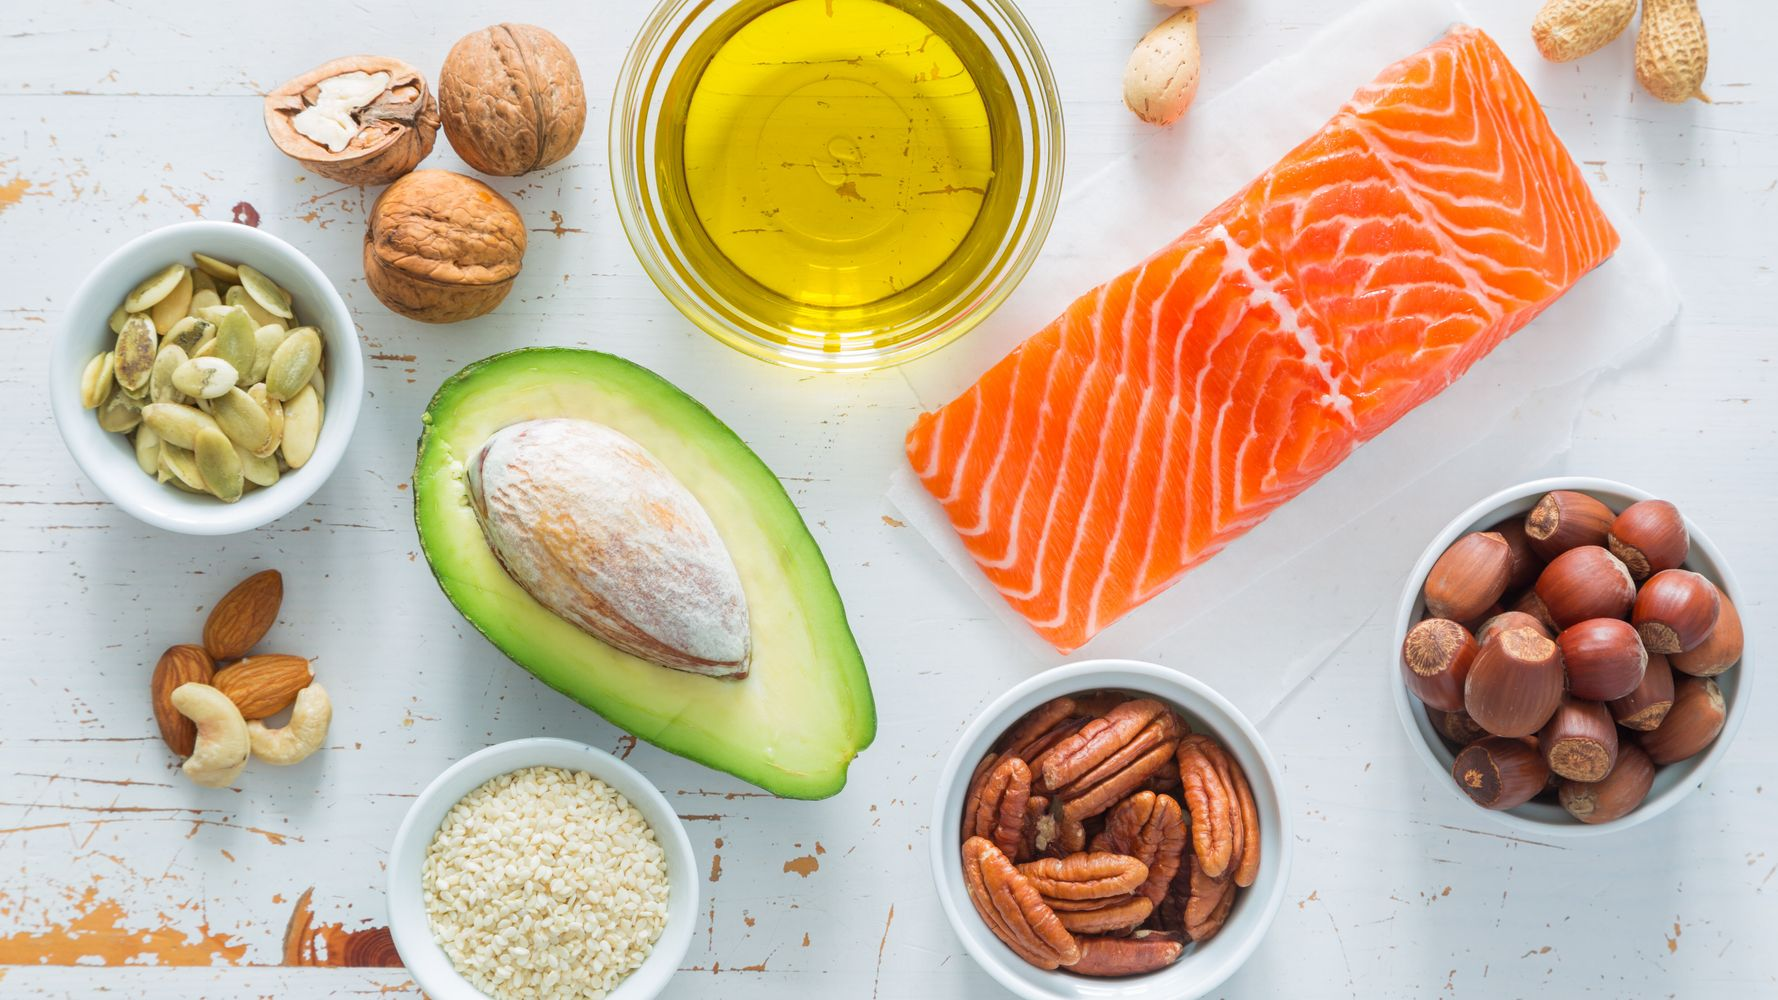 diet high in saturated fat increases energy